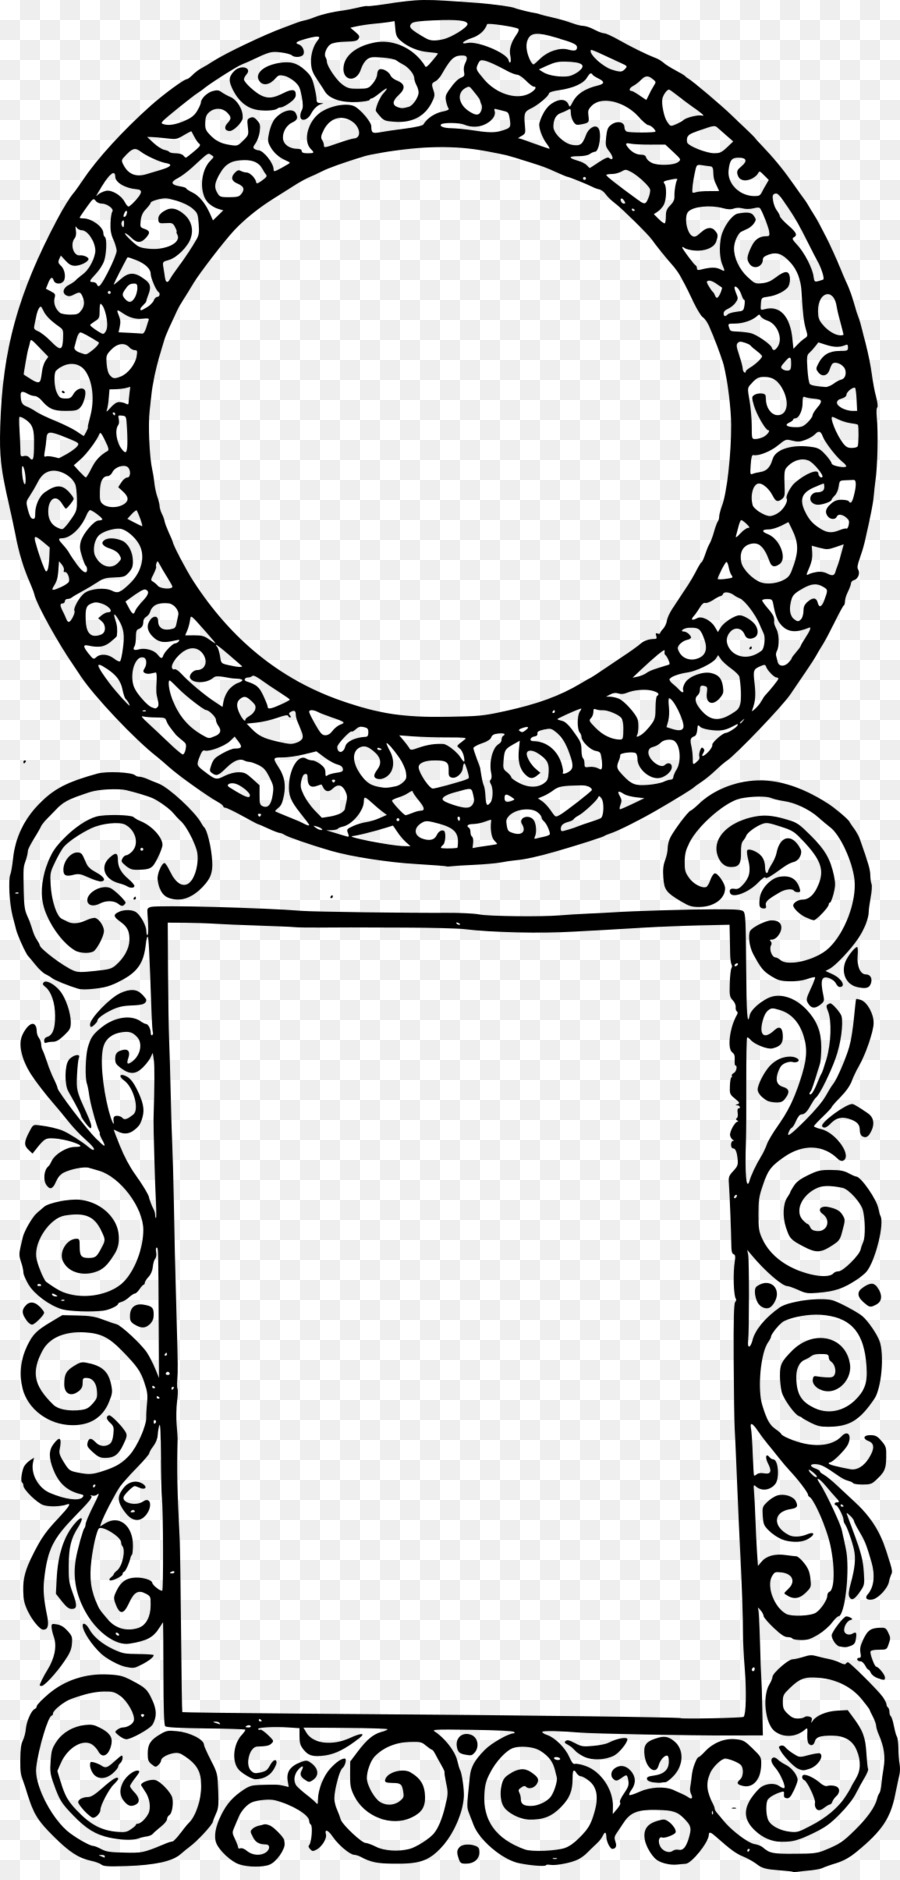 Picture Frames Square Clip art - islamic frame png download - 1154 ...